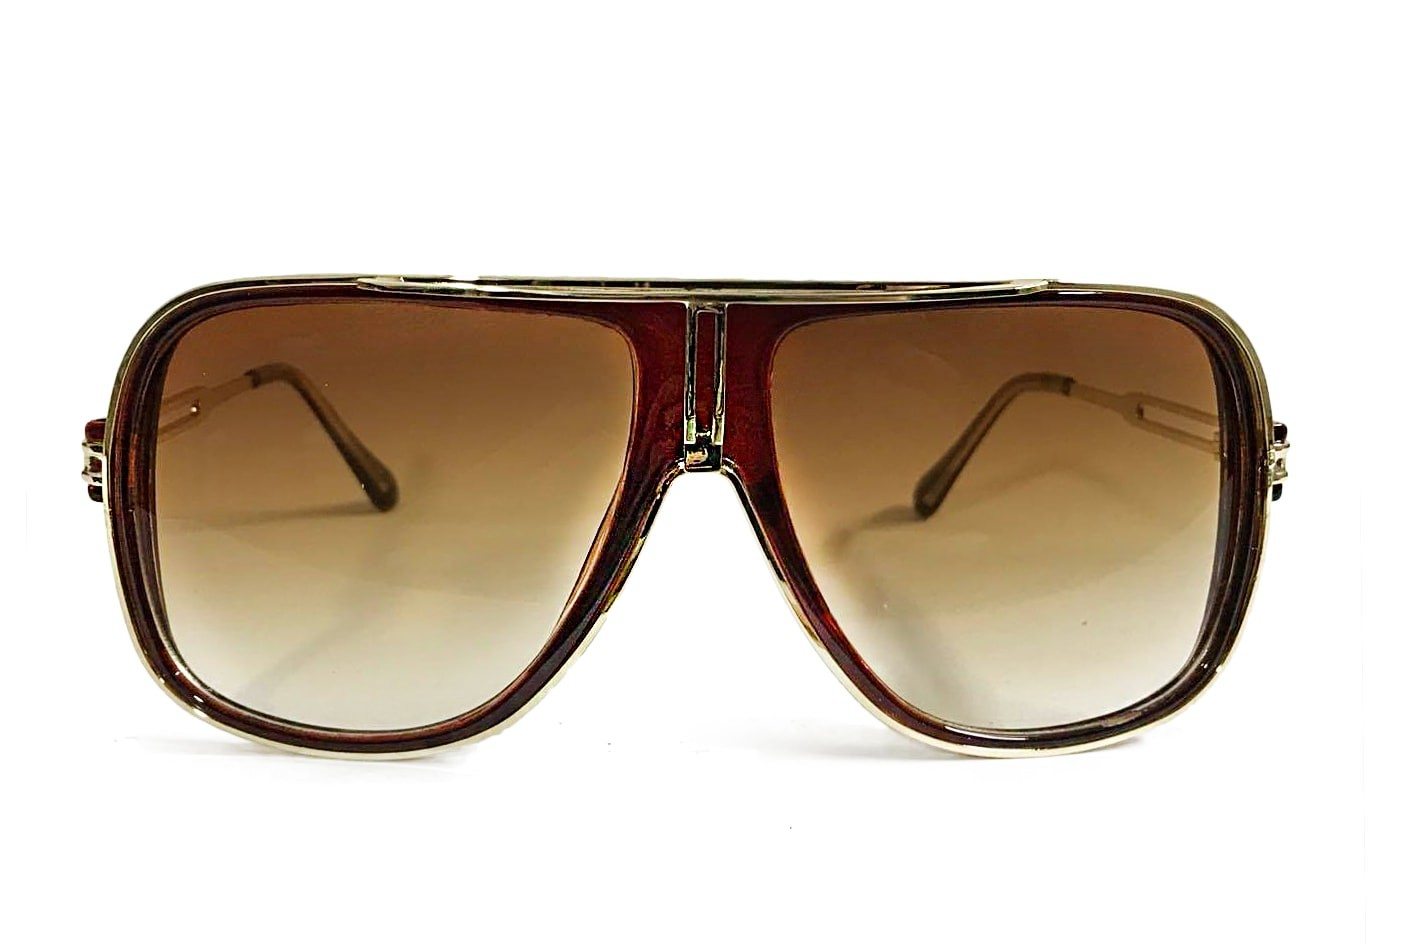 WINE and GOLD - BROWN SUNGLASSES